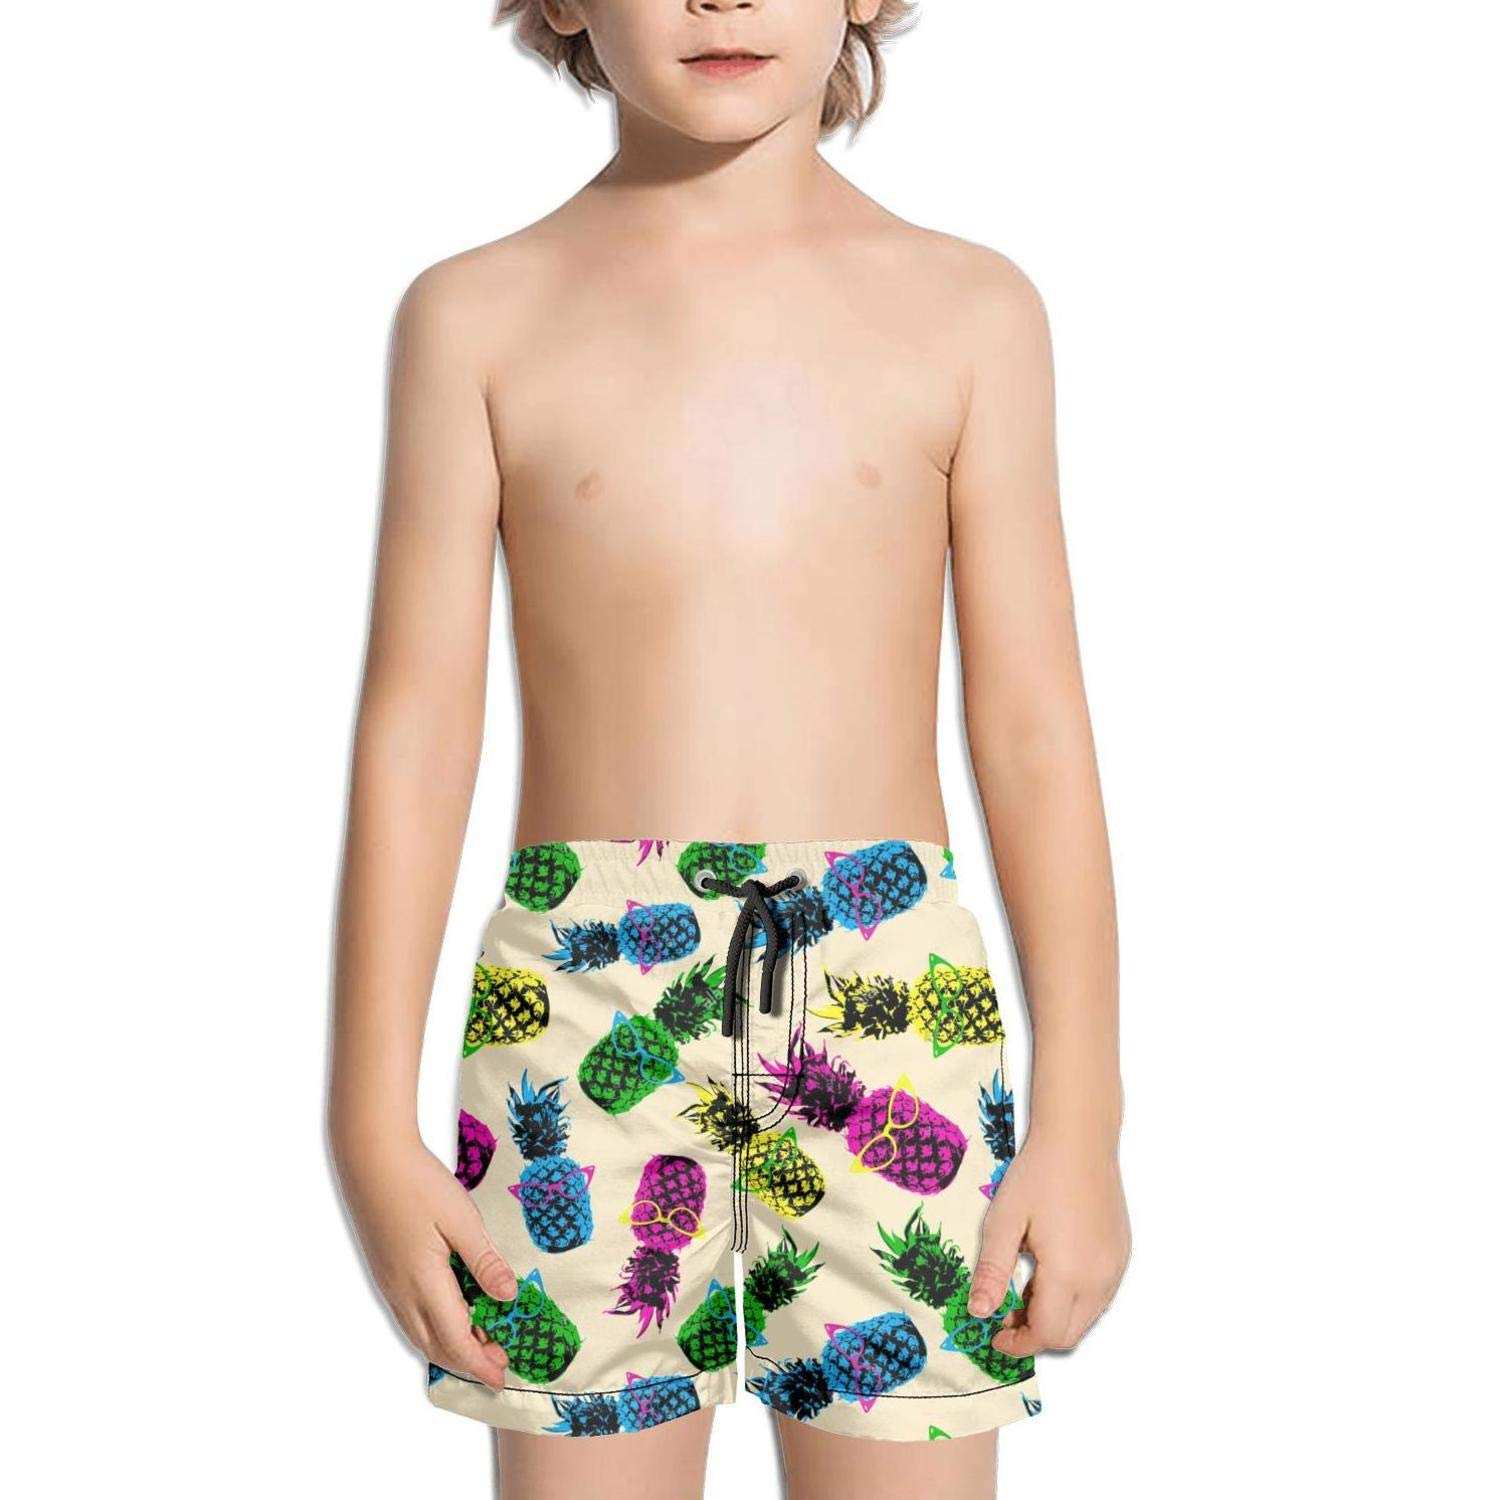 Ouxioaz Boys' Swim Trunk Hipster Style Pineapple Fruit Elements with Vintage Eye Glasses Beach Board Shorts